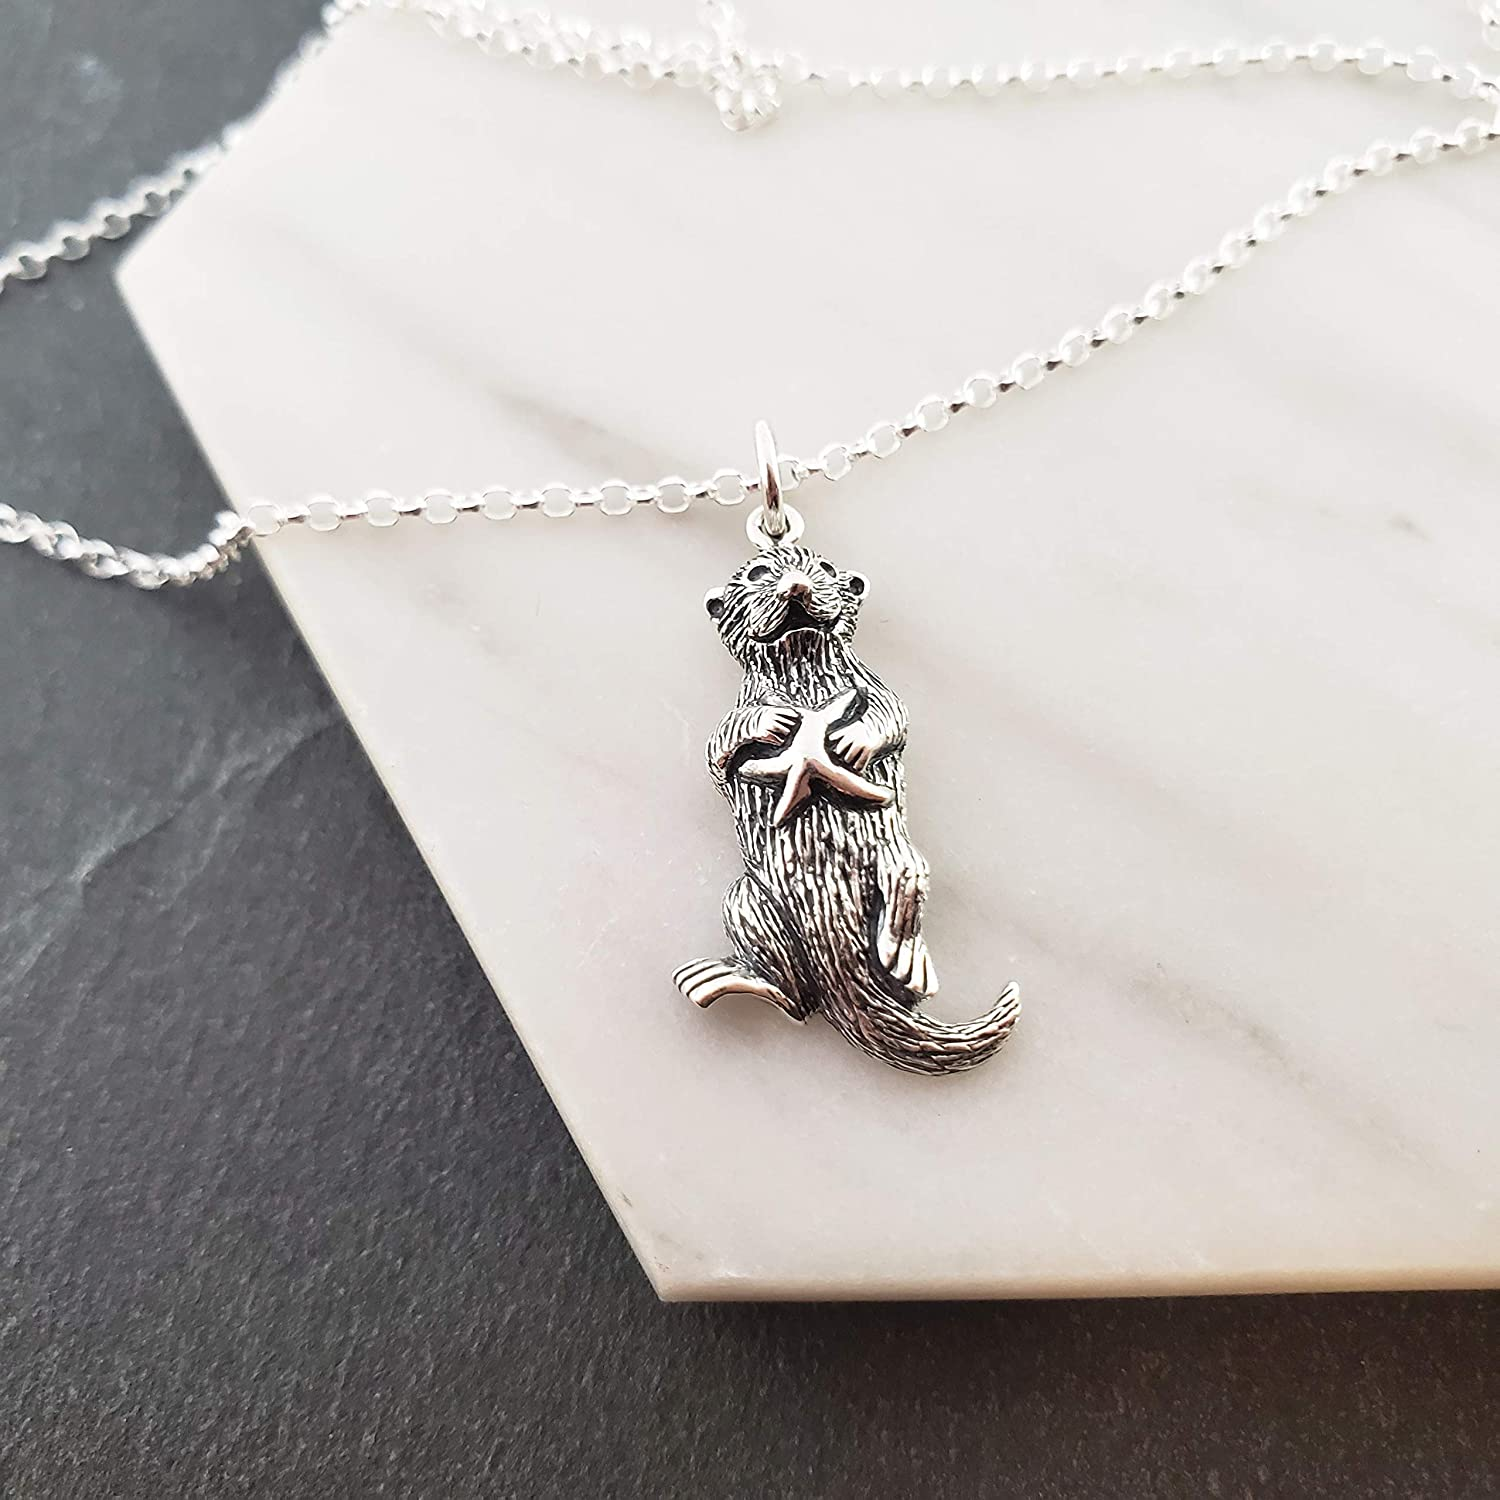 otter-gifts-sterling-silver-necklace